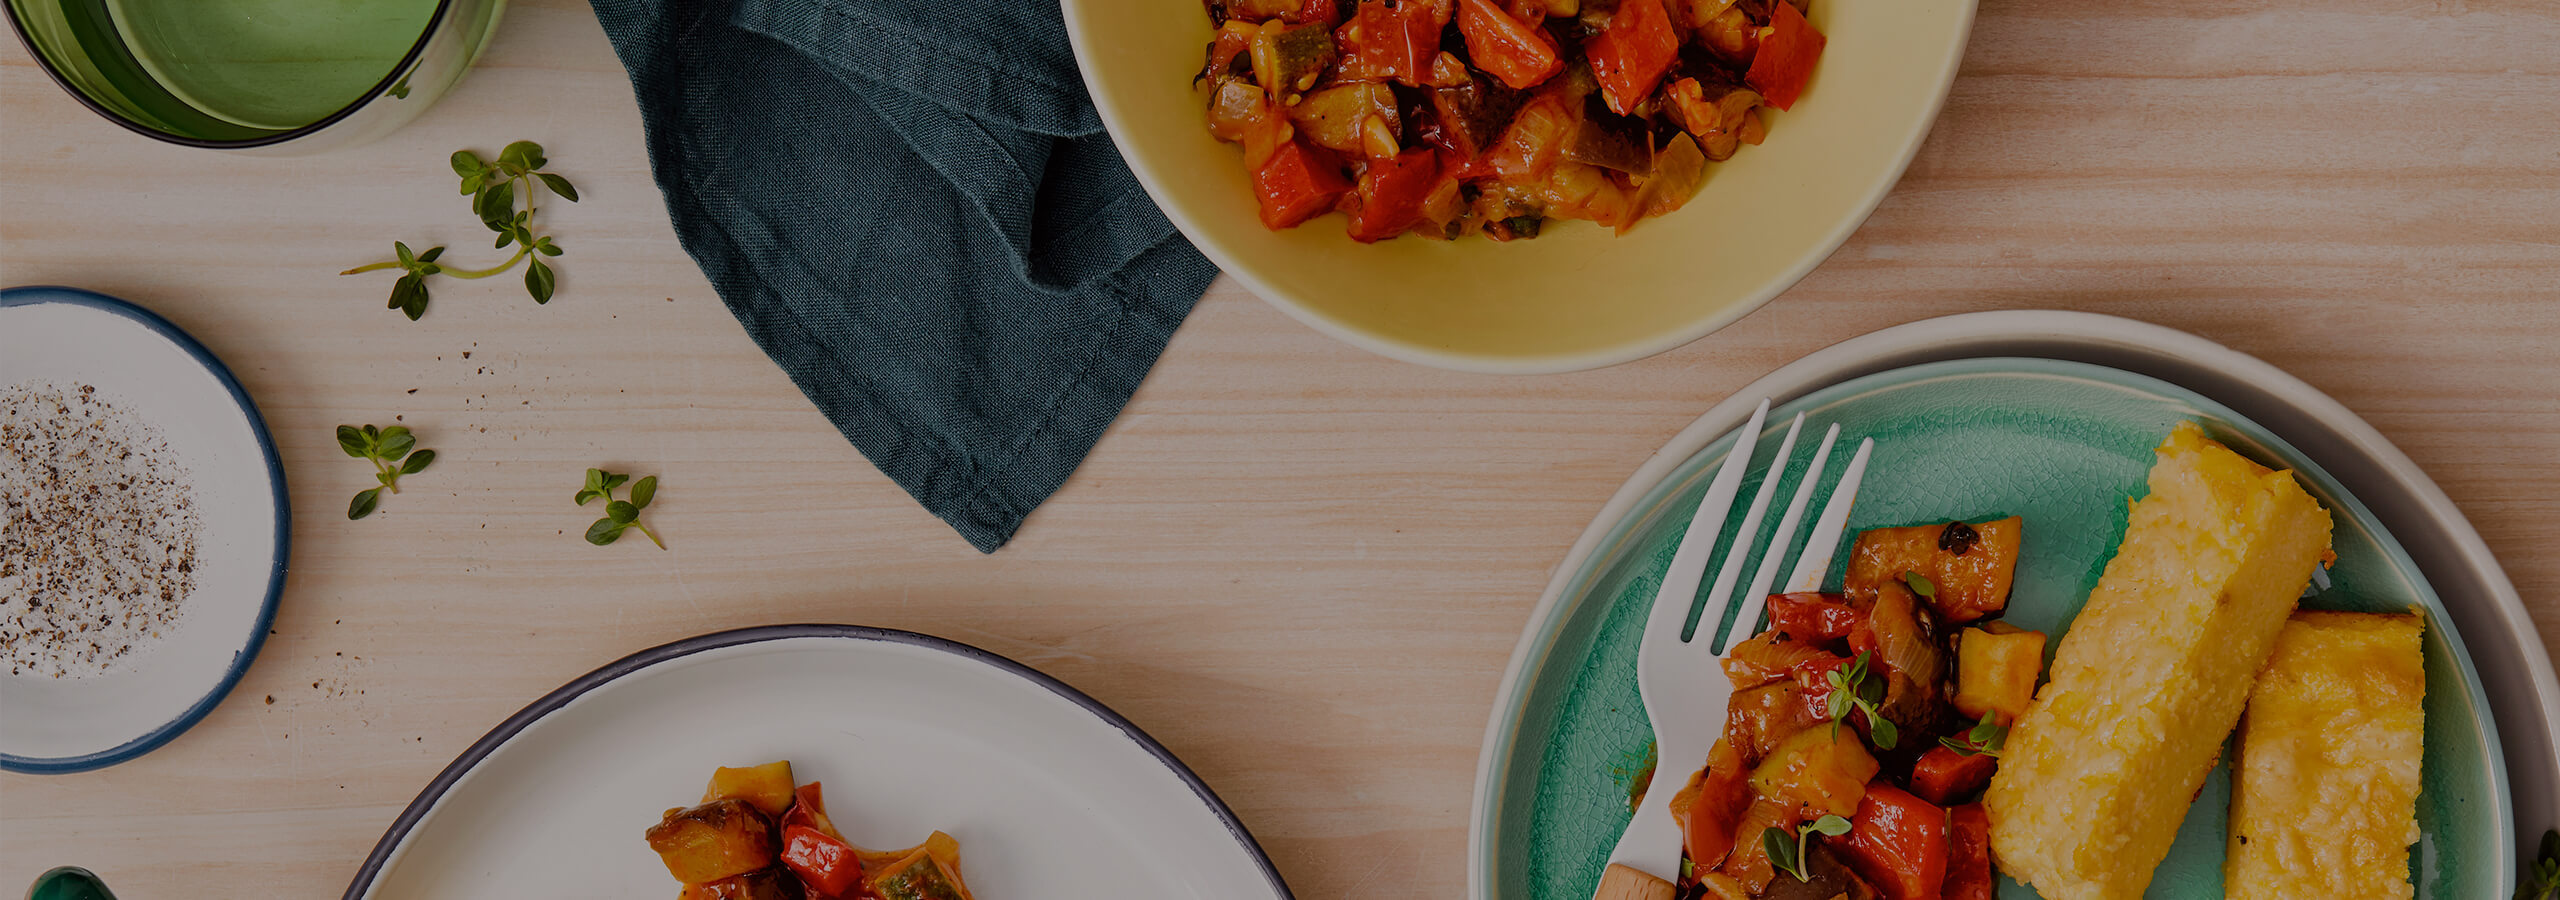 Summer Ratatouille with Cheesy Baked Polenta